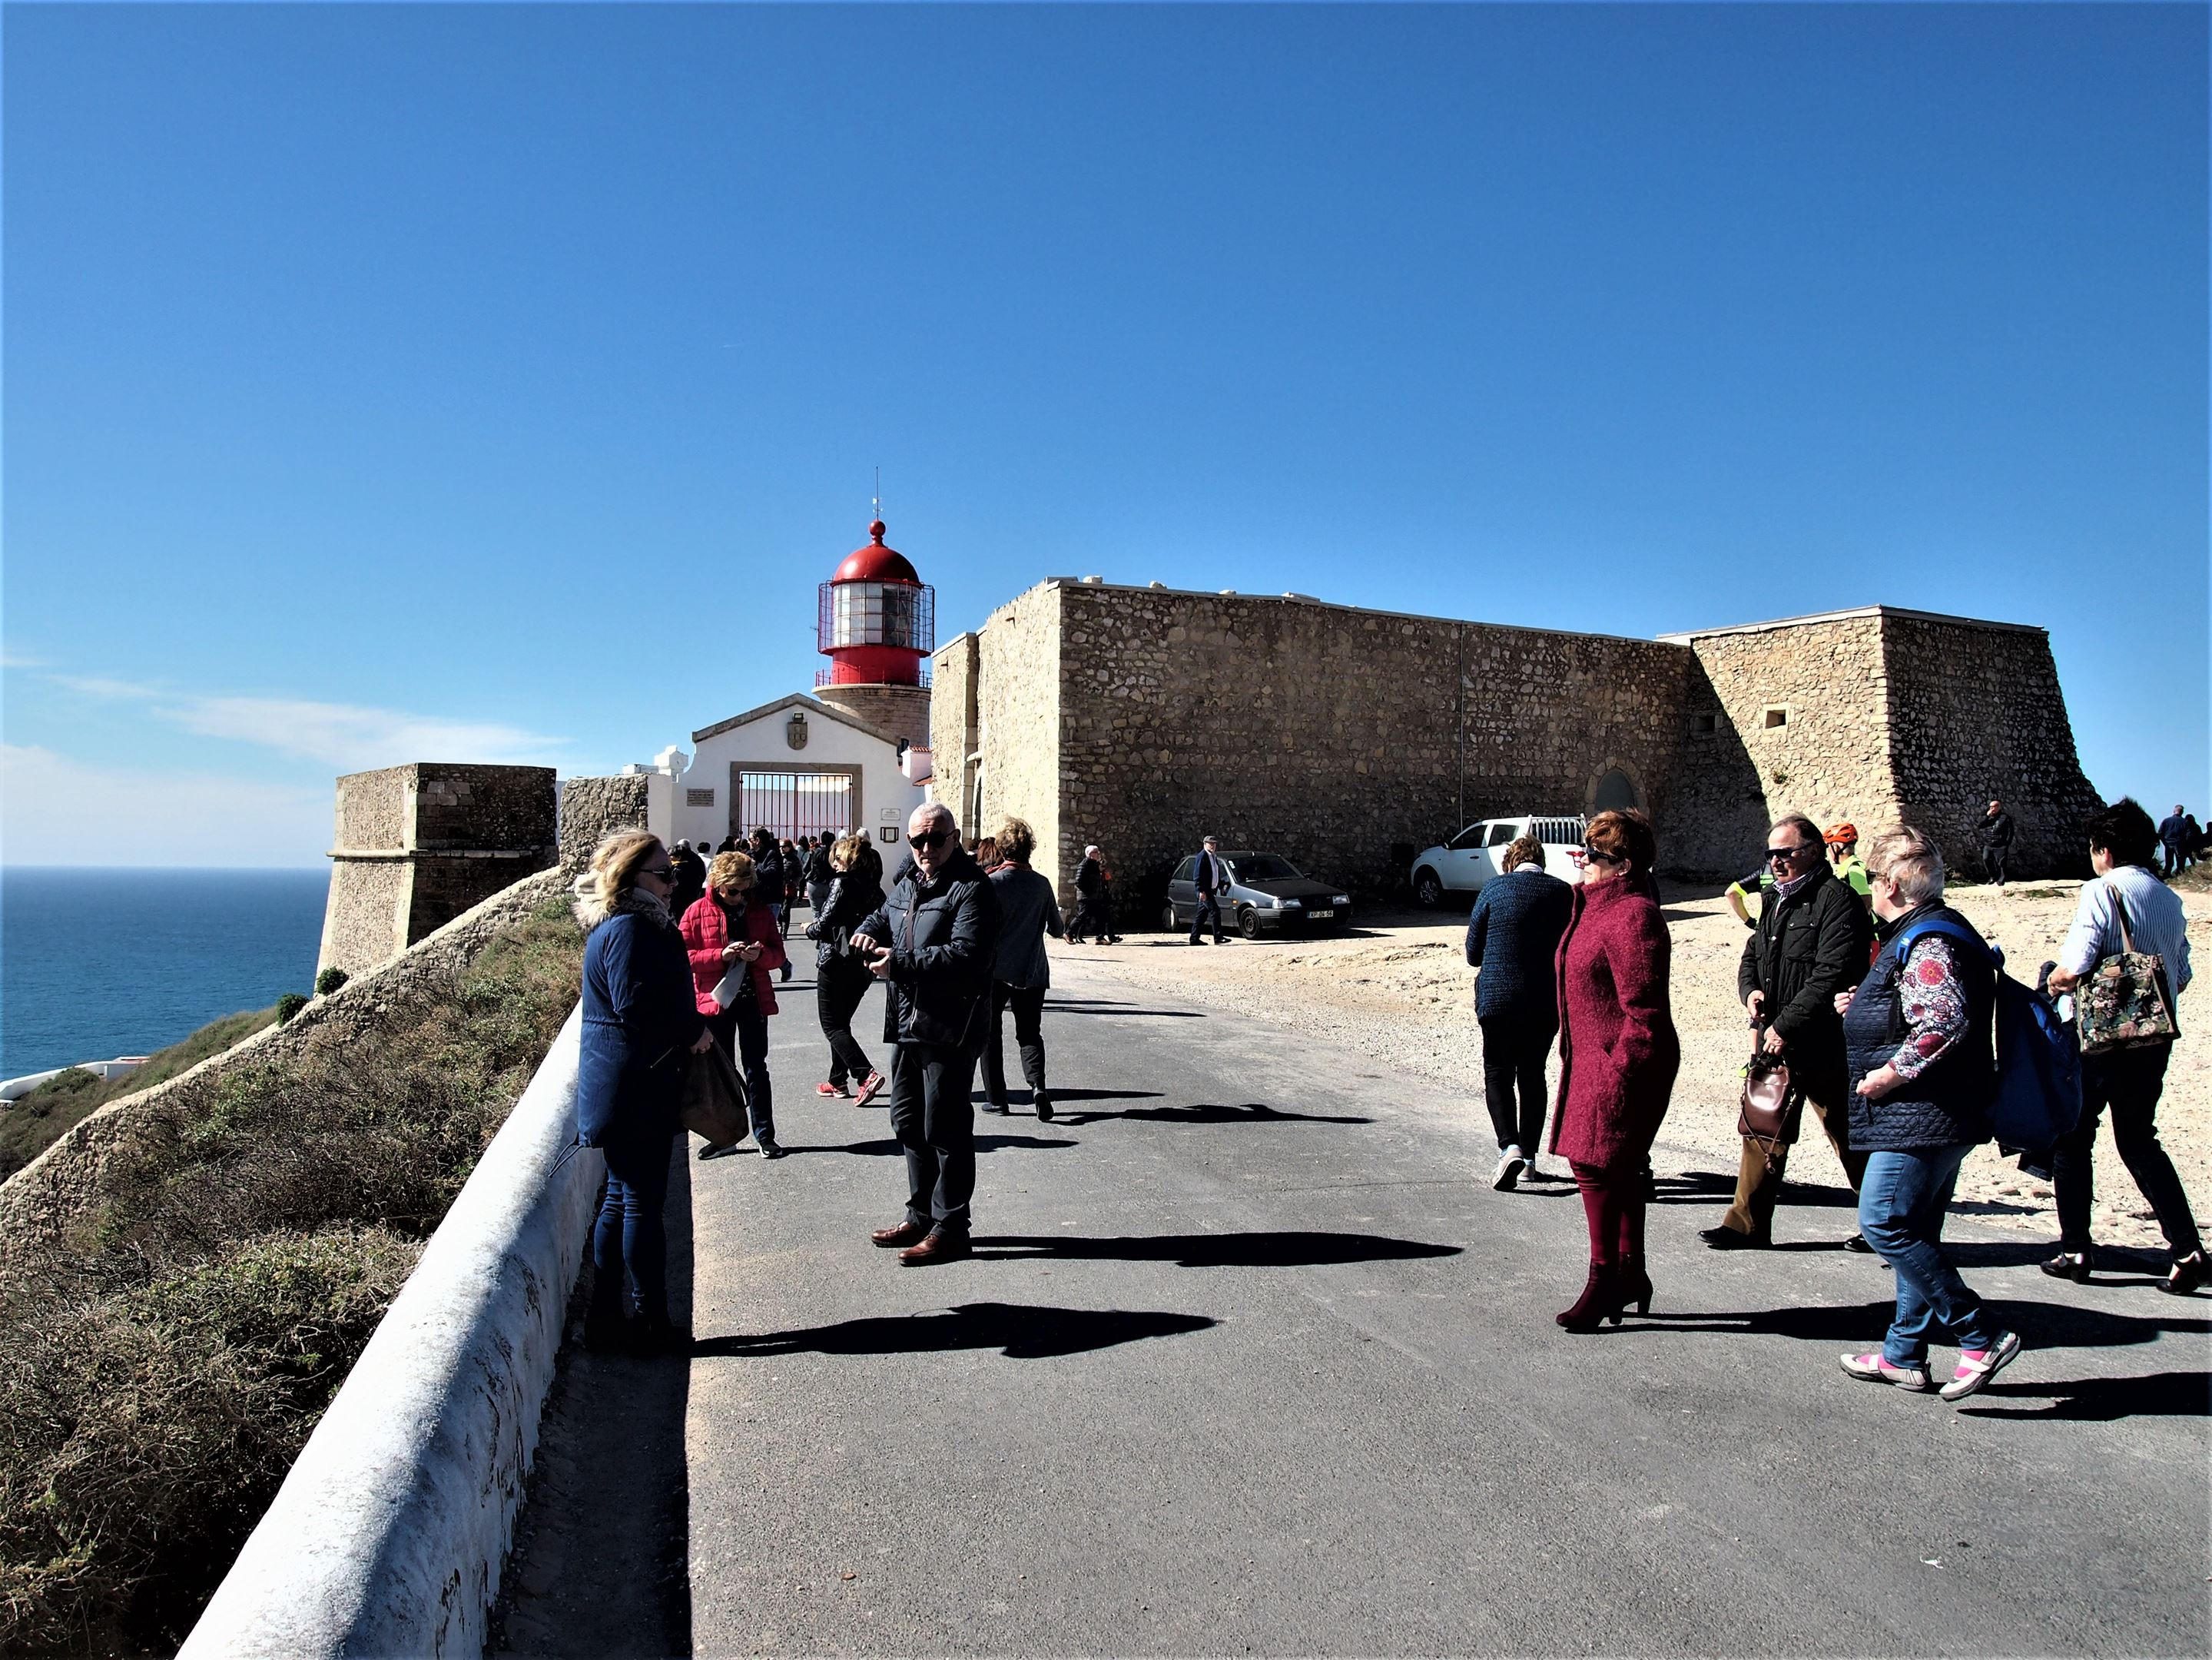 At the entrance to Cabo de São Vicente, Sagres